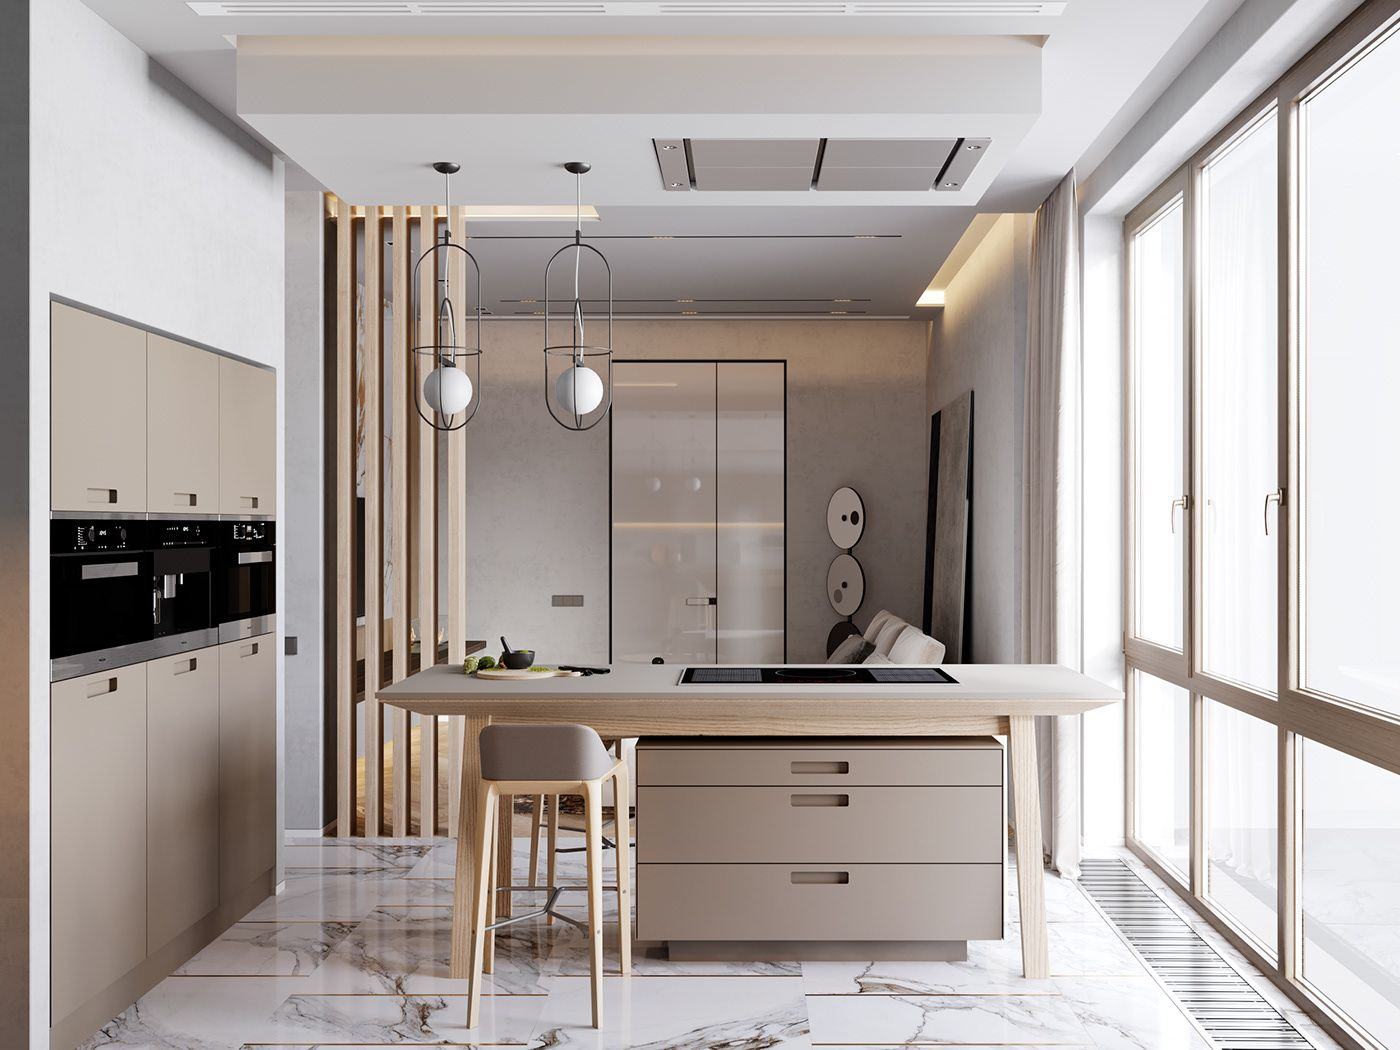 Type private residence interior design location saint petersburg region russiaproject area sqroject year january status under also rh ar pinterest